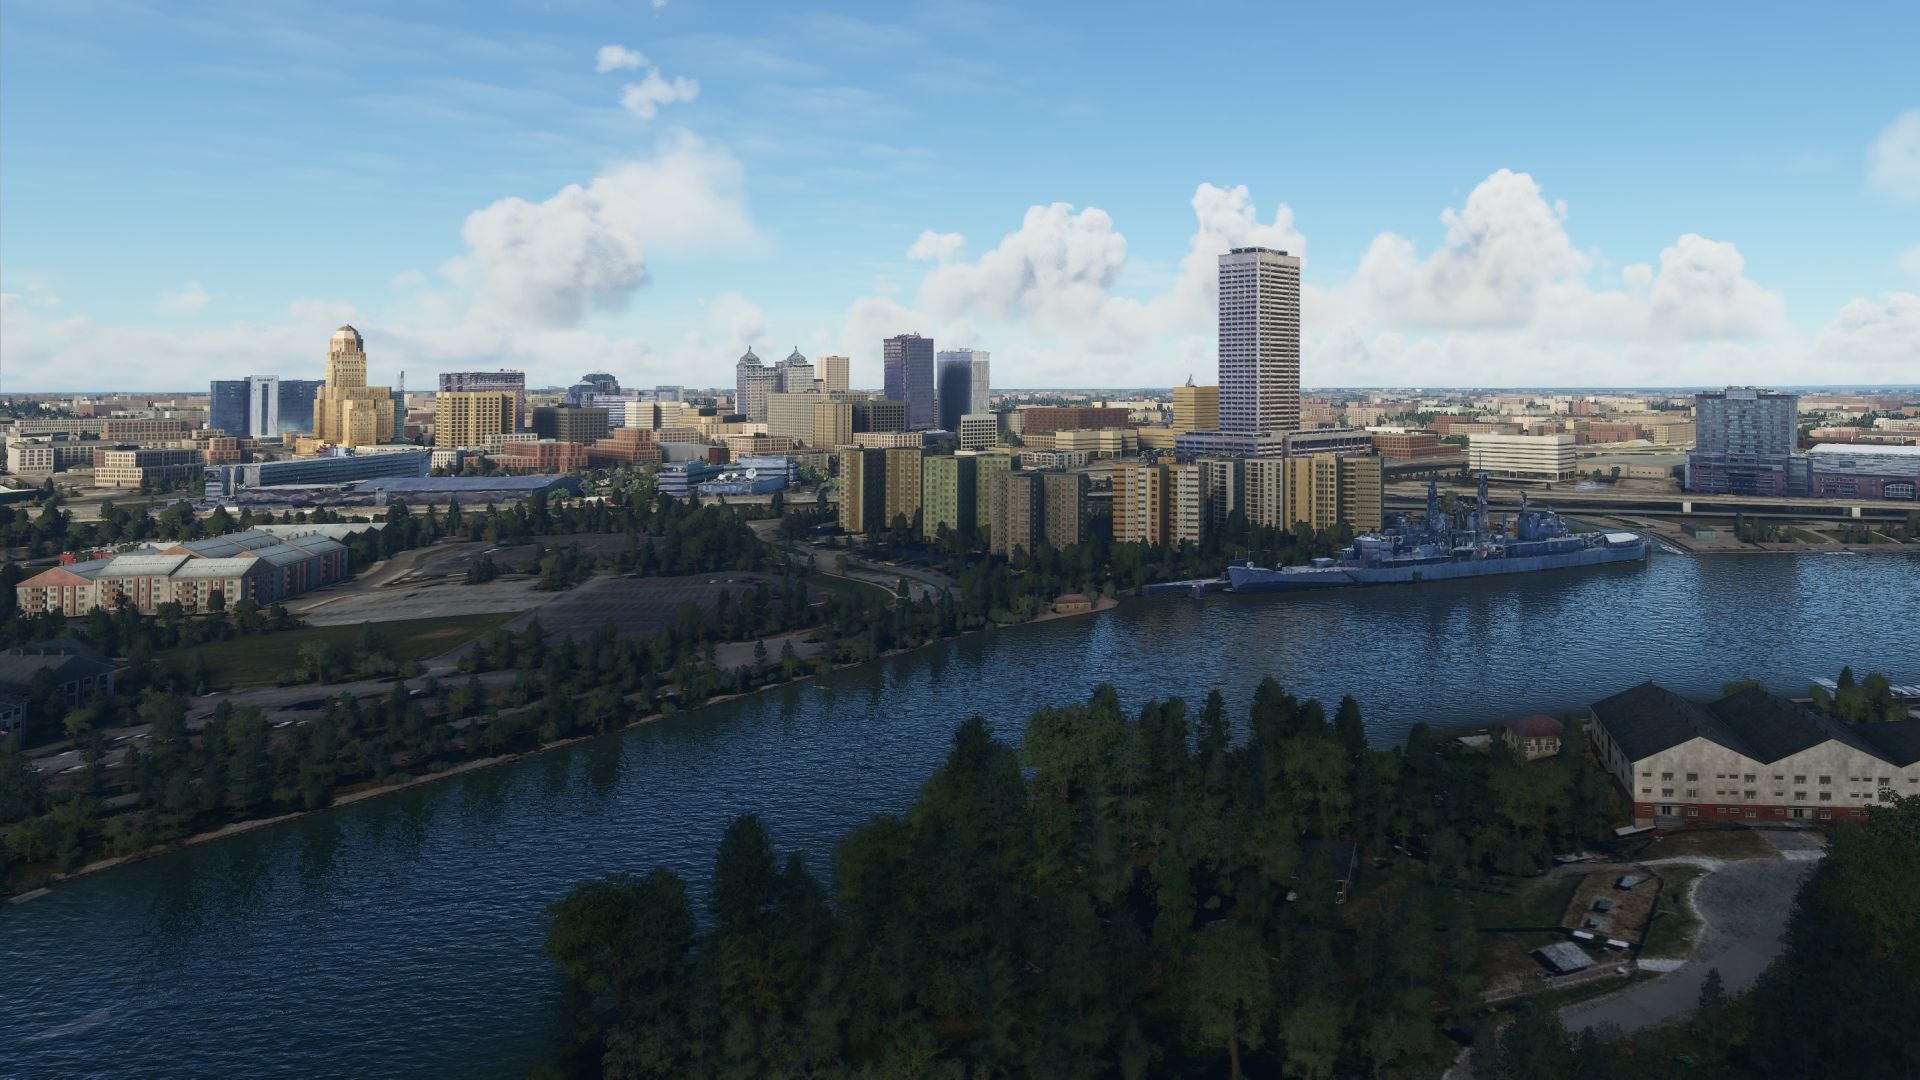 A Microsoft Flight Simulator screenshot. It shows the city of Buffalo, New York. The mod has added accurate buildings to the game